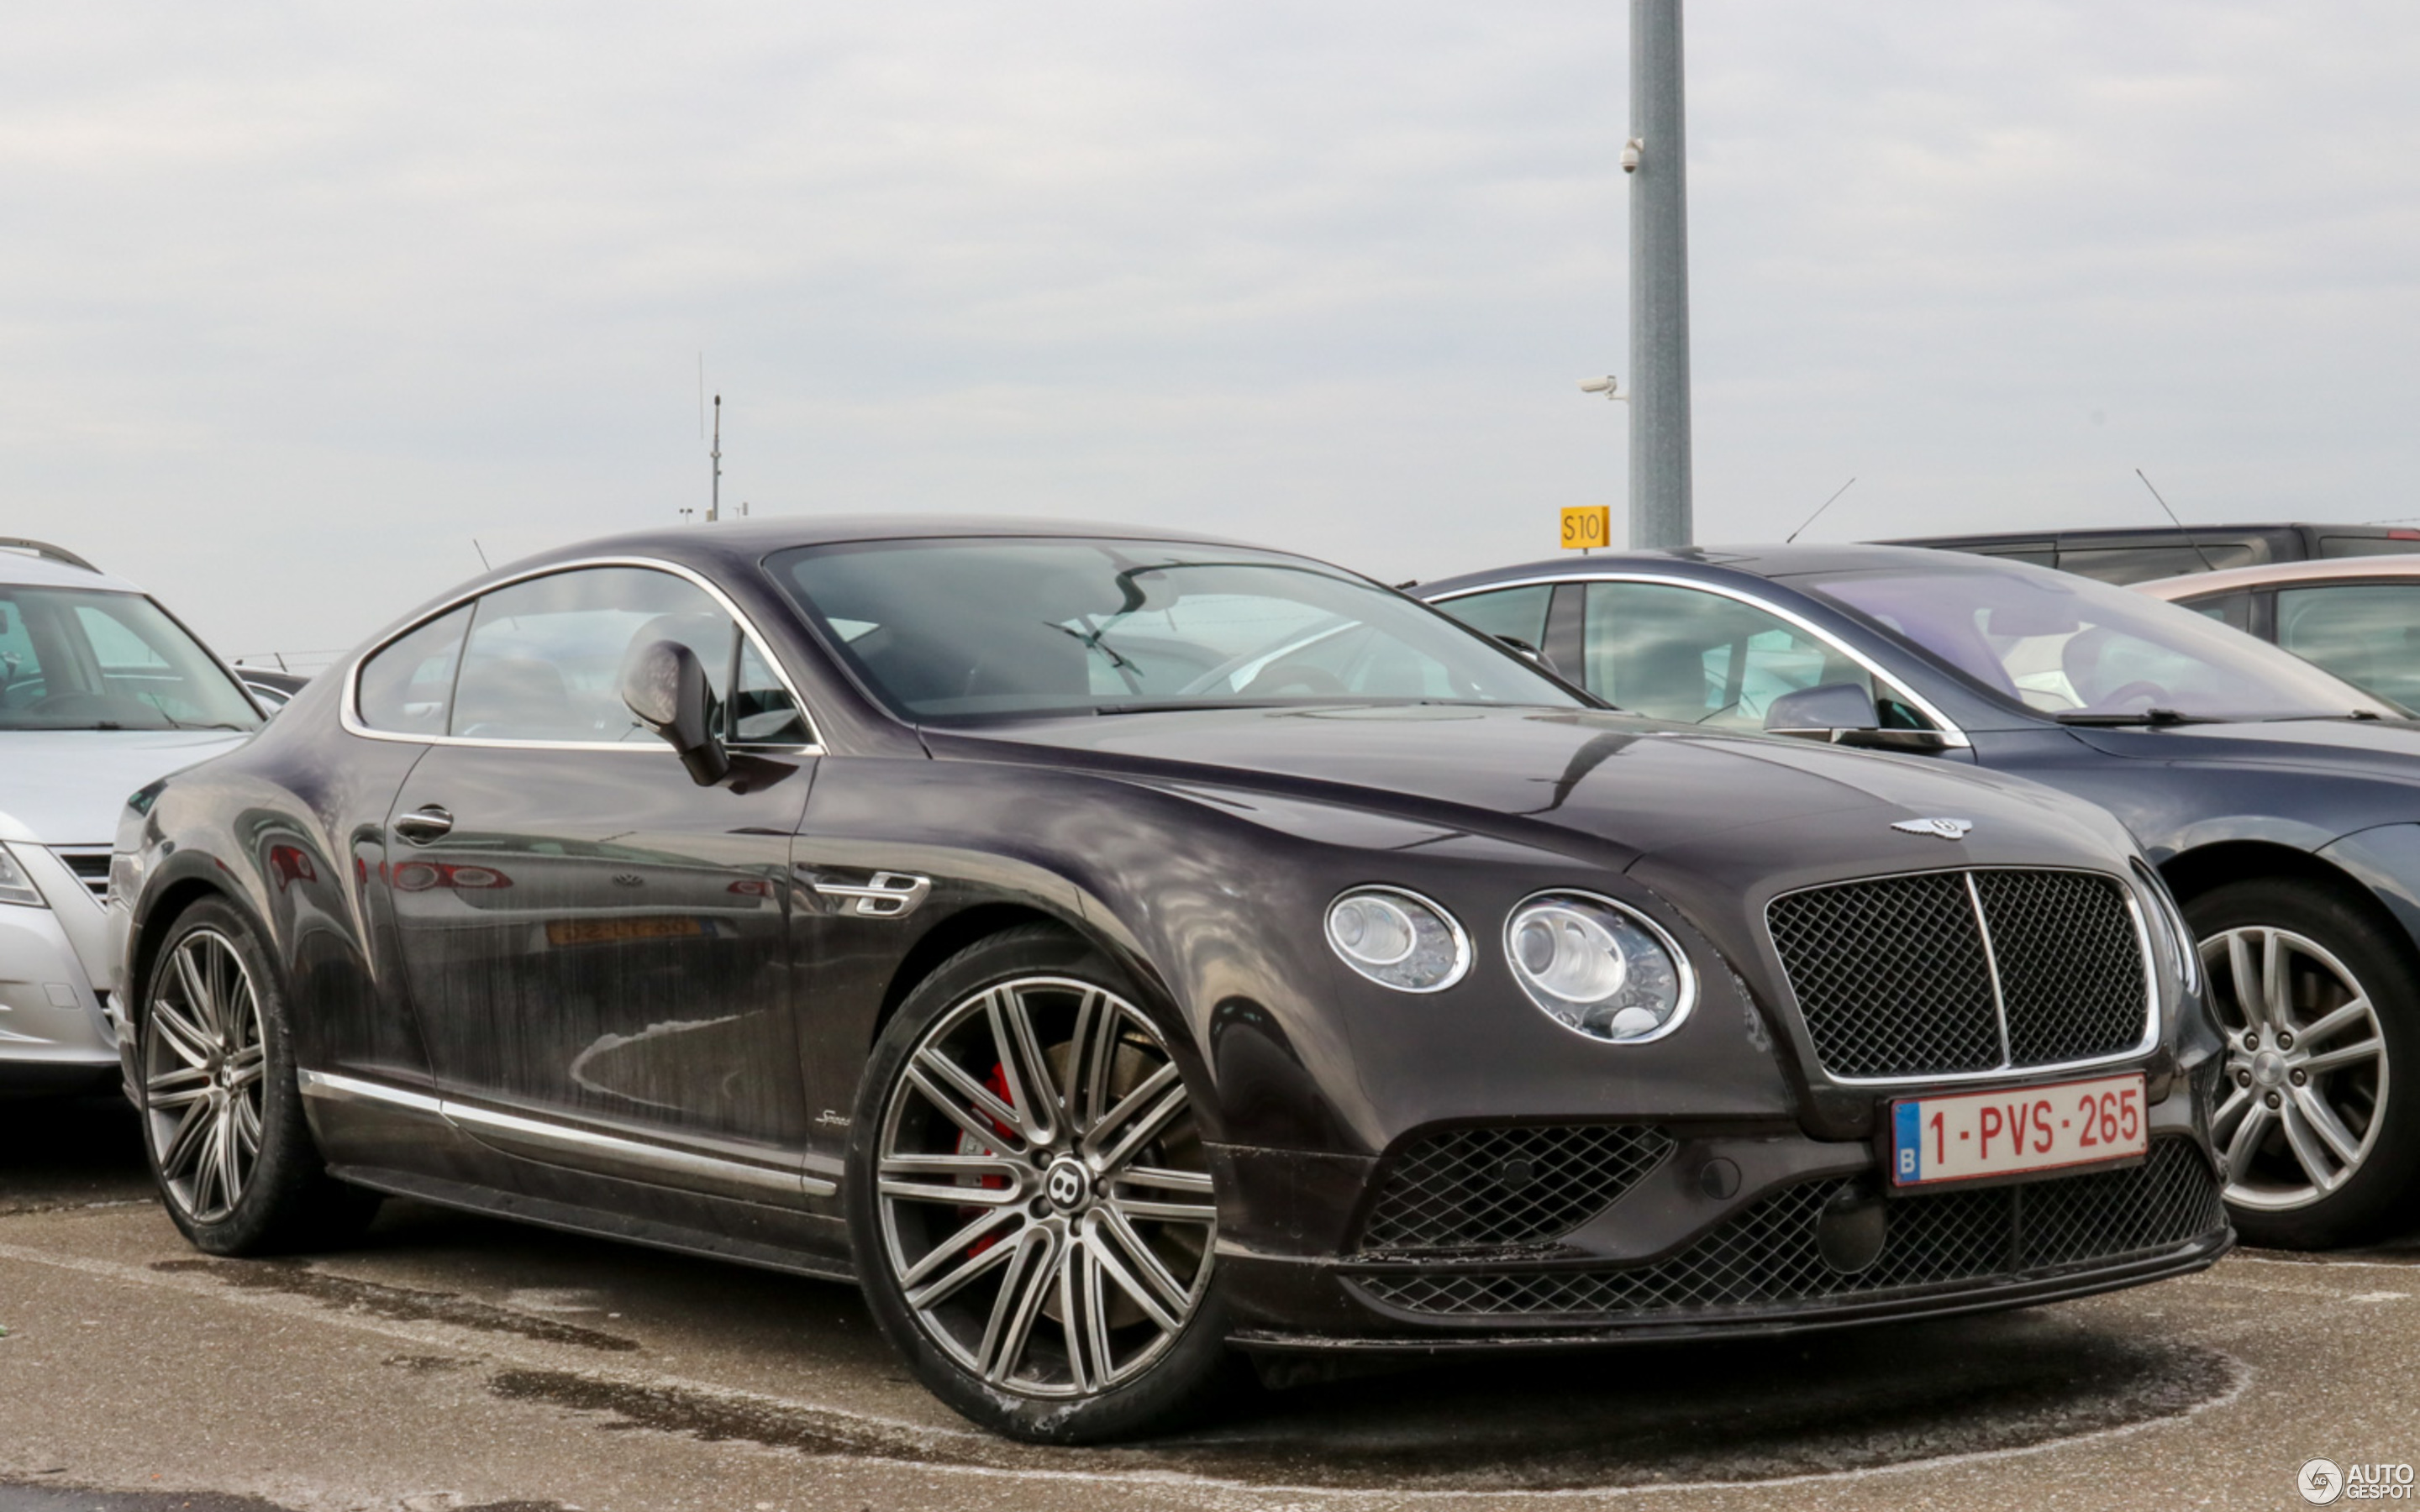 trans cars release gt continental bentley a new news in prices specs grand coupe the british tourer revealed brawny pictures